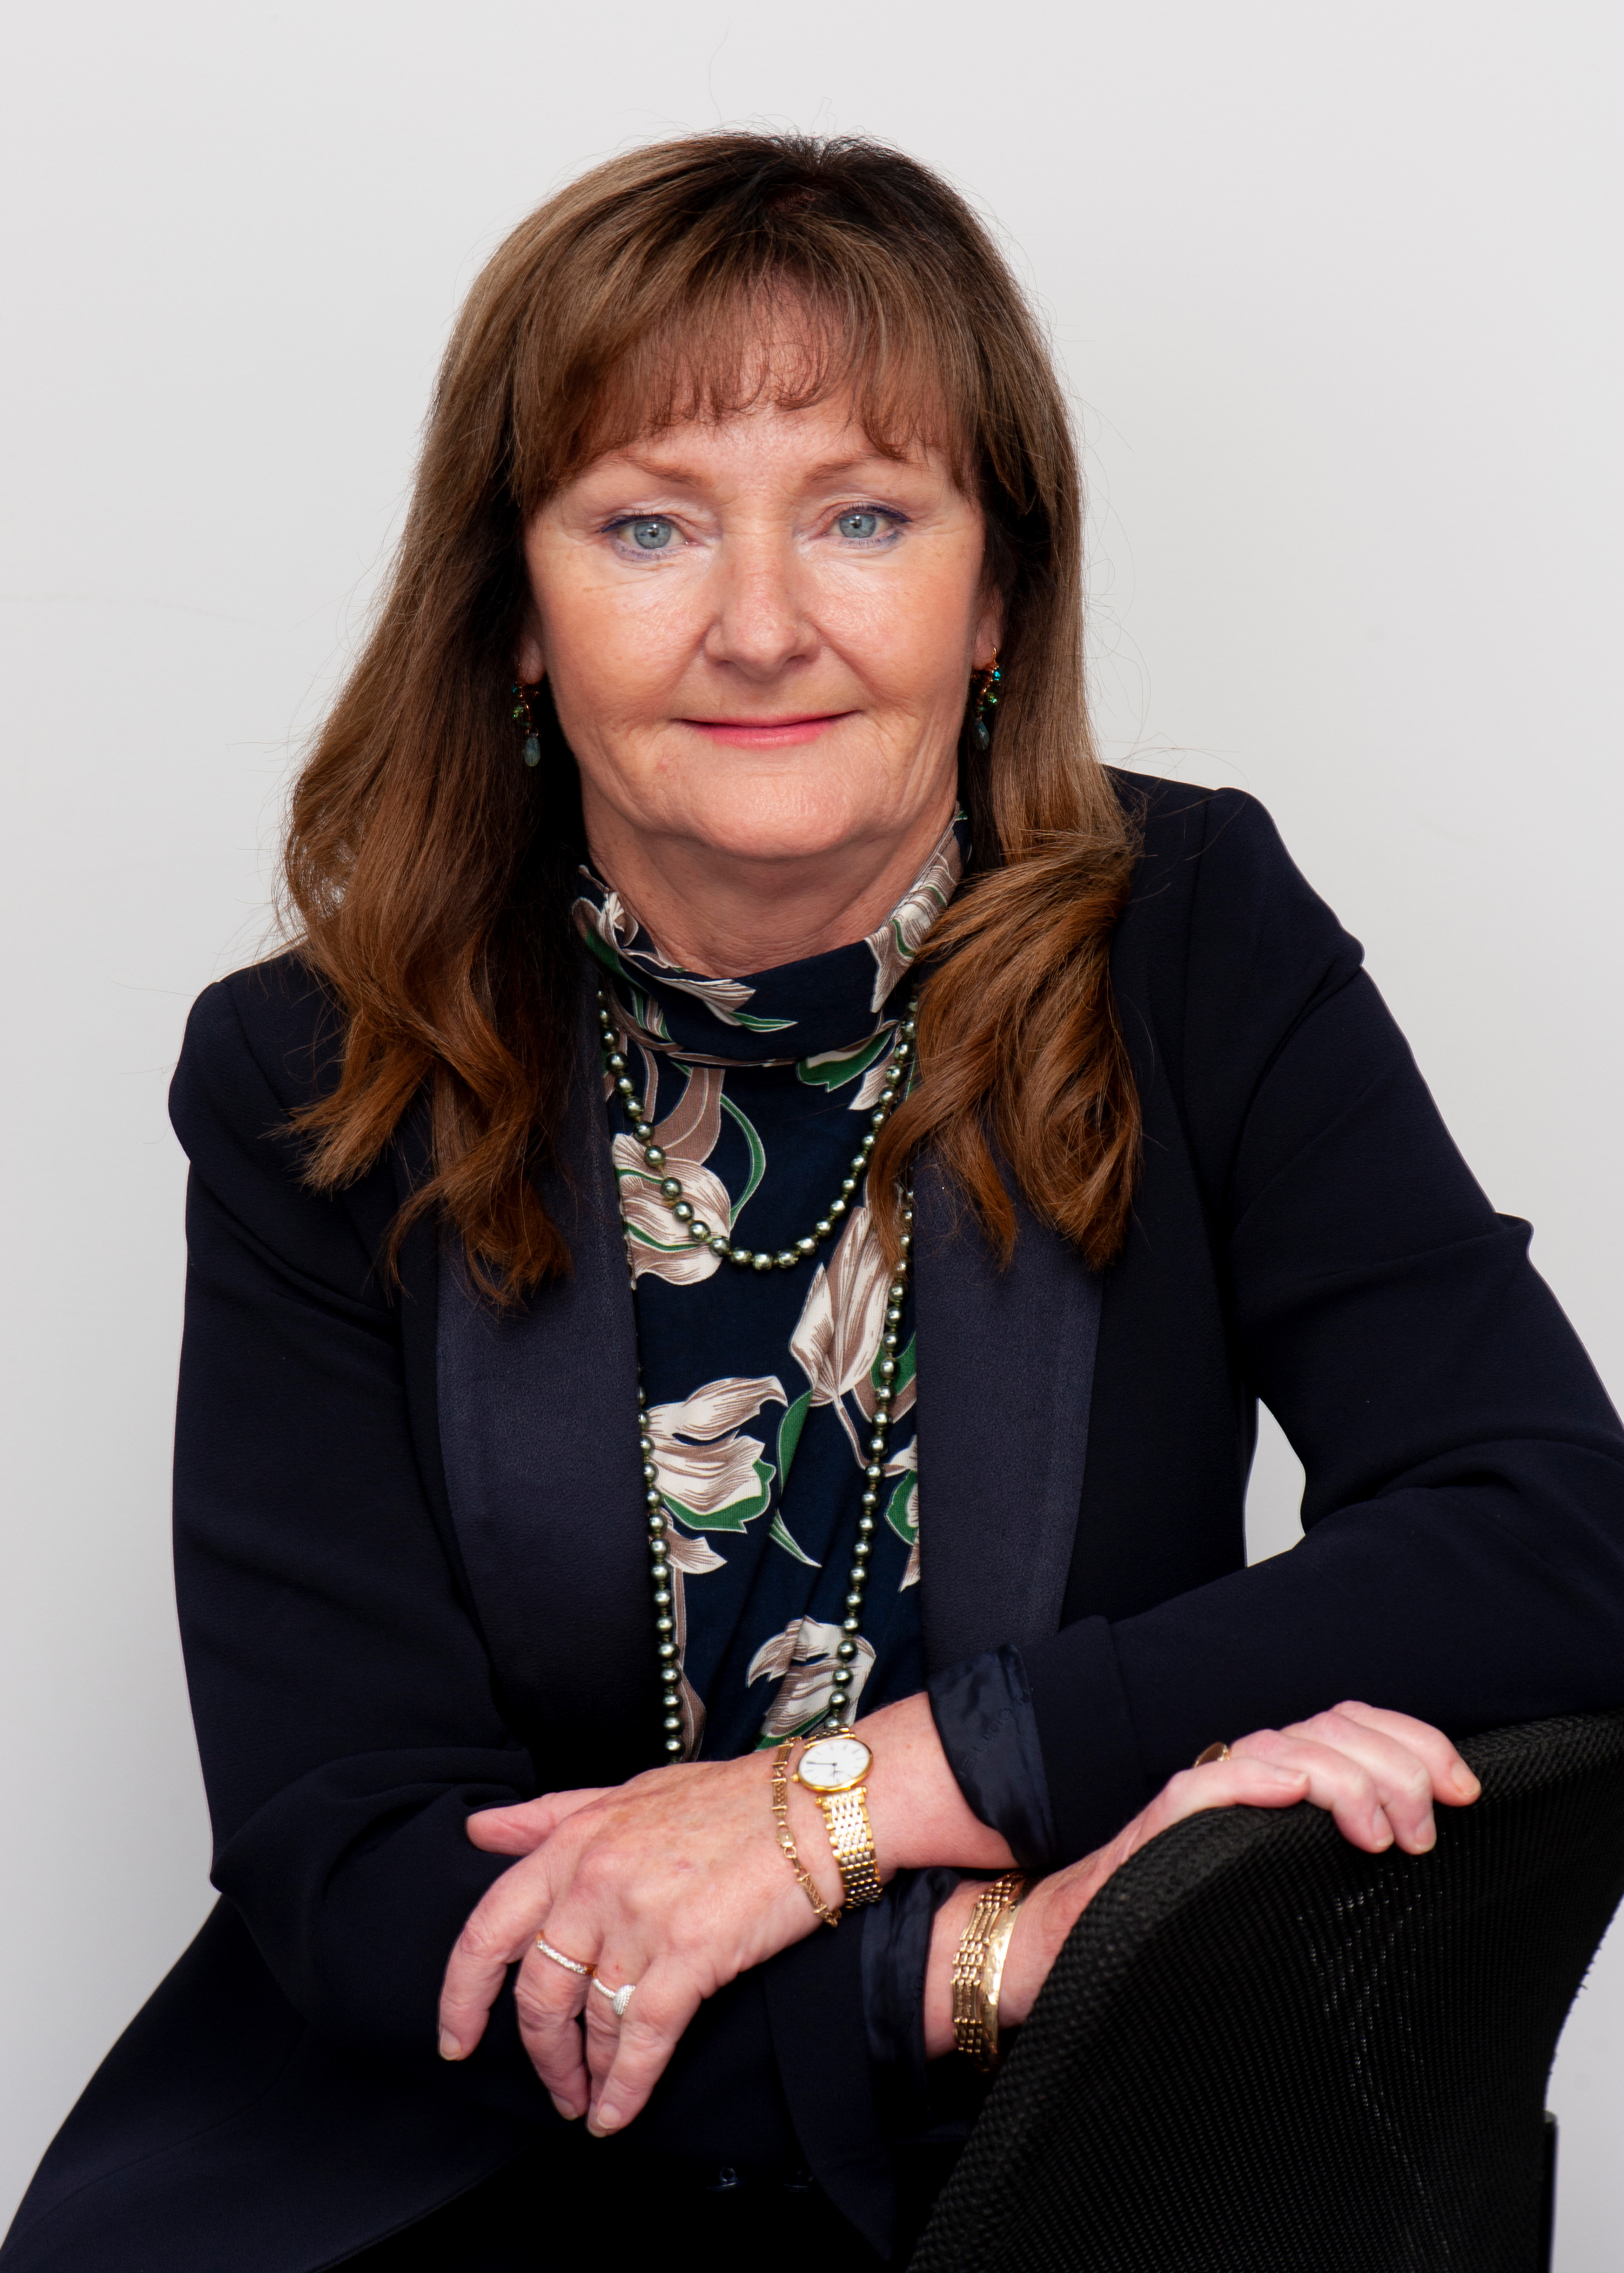 Portrait Image Of Catherine Cairns, General Manager Of Interact Australia